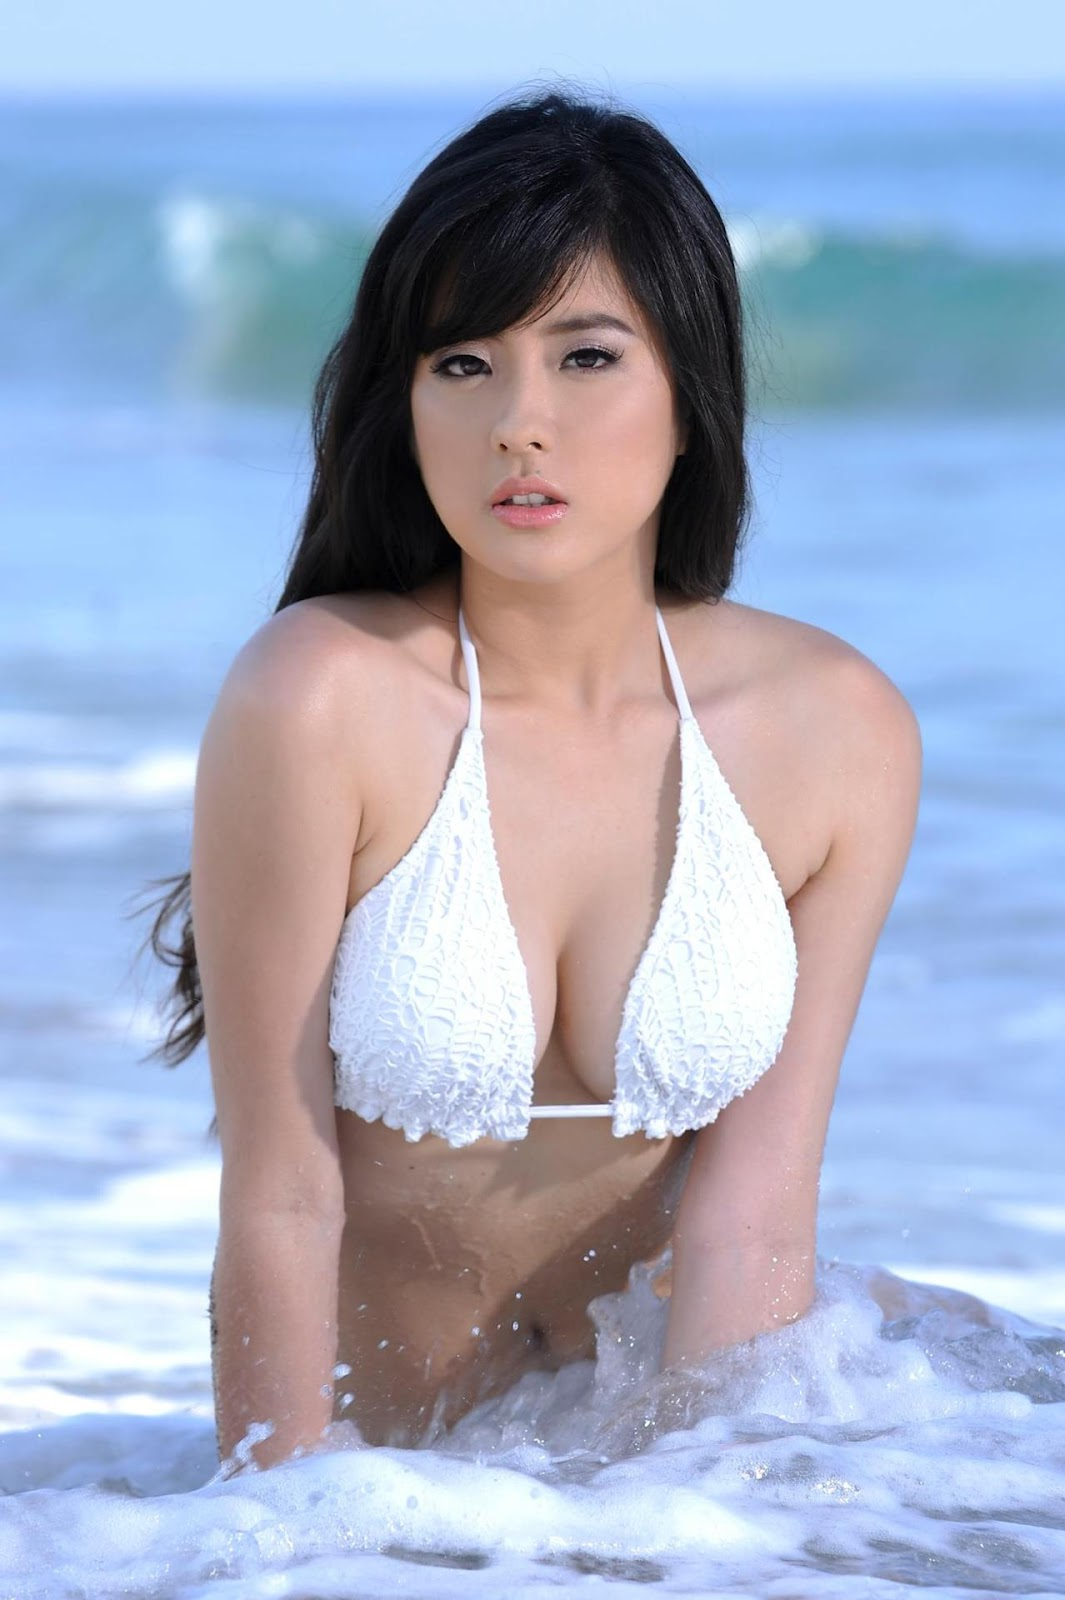 jinri park hot and sexy bikini photos 01